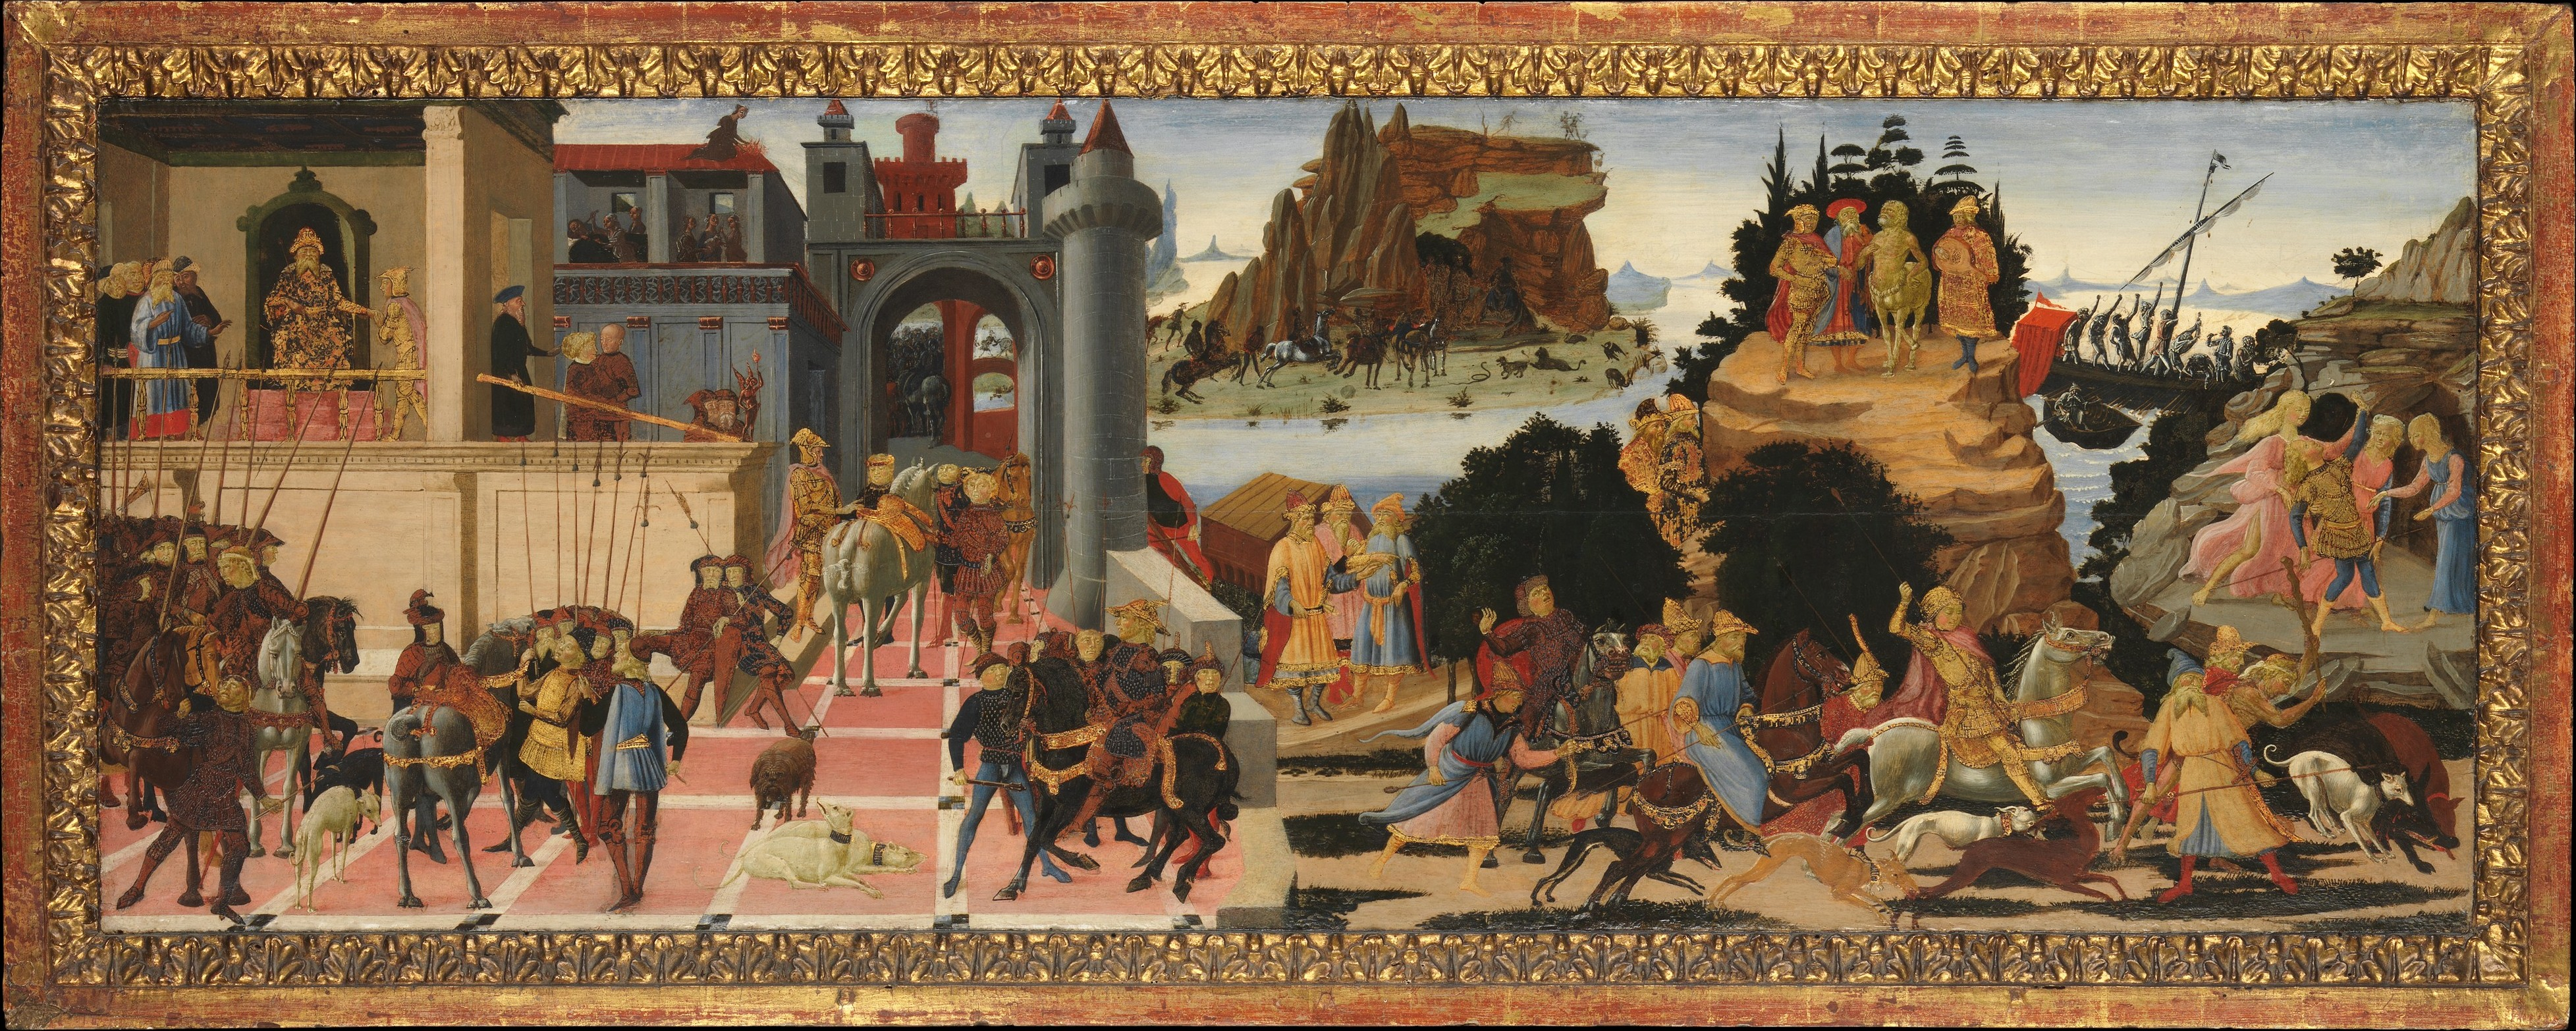 Scenes from the Story of the Argonauts, cr. 1465, Biagio di Antonio and Jacopo del Sellaio